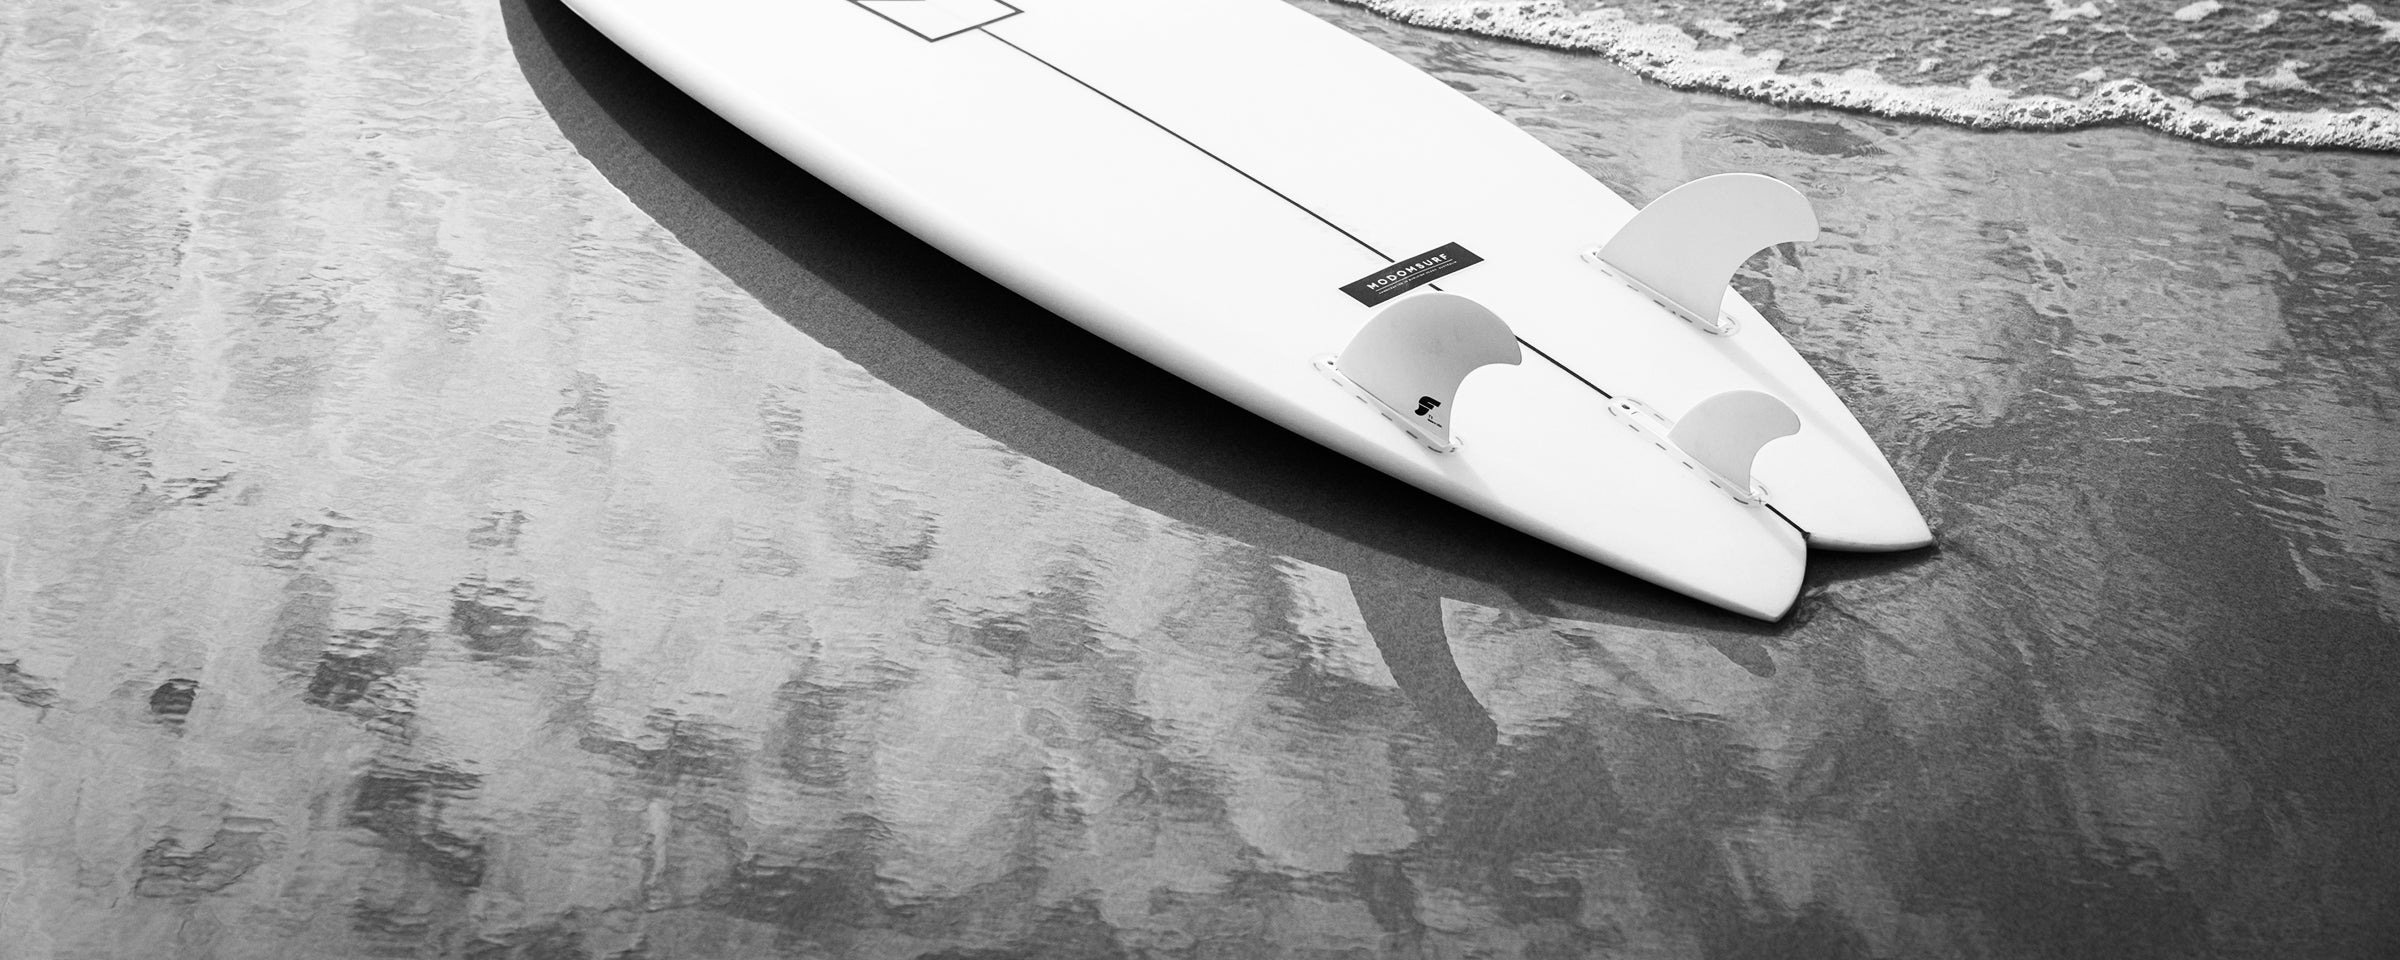 MODOM Surfboards